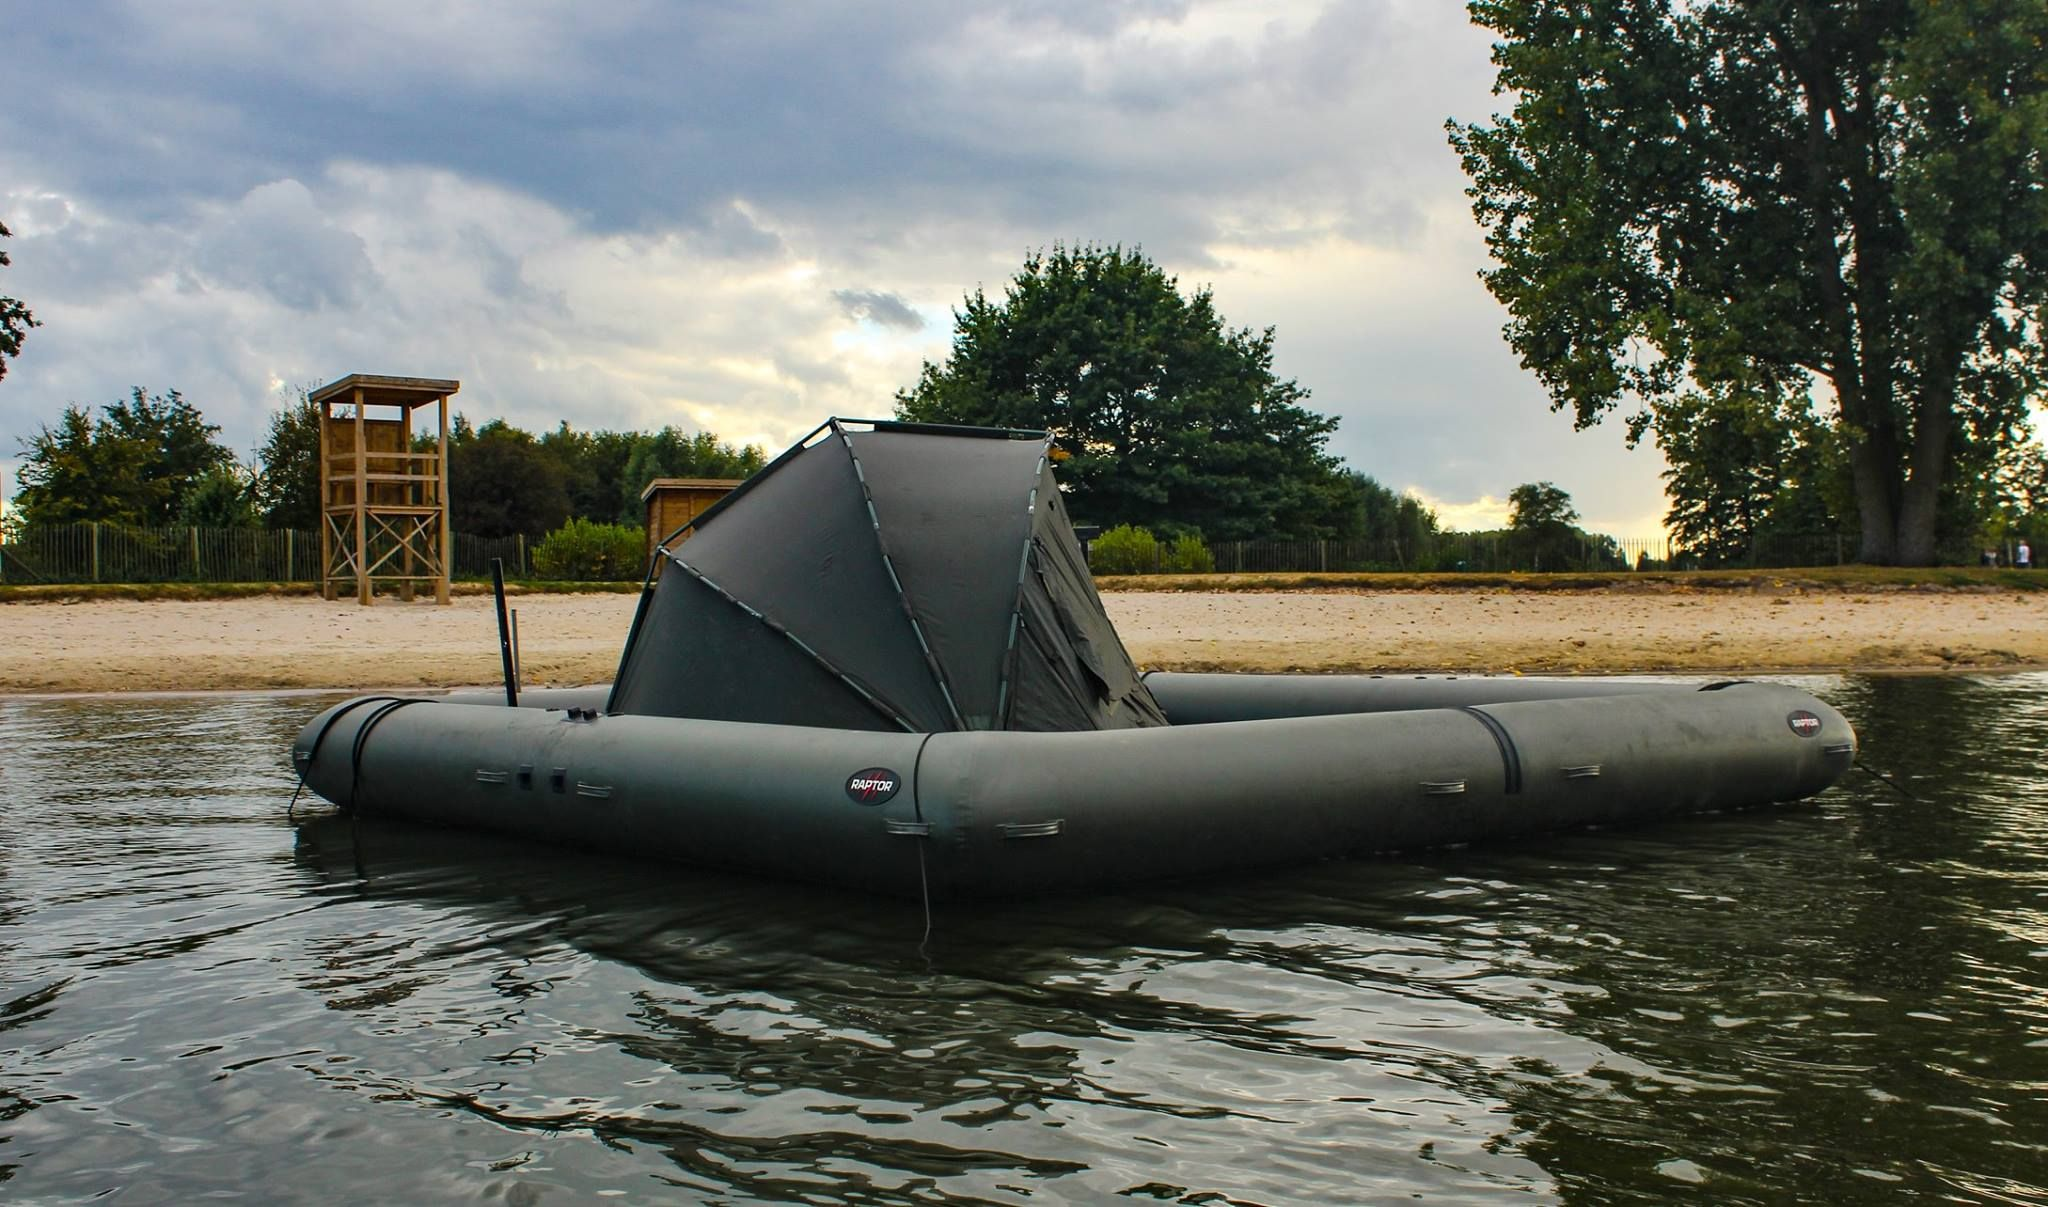 a6e5f6cc73f Raptor Boat with Tent - Boat With a Tent